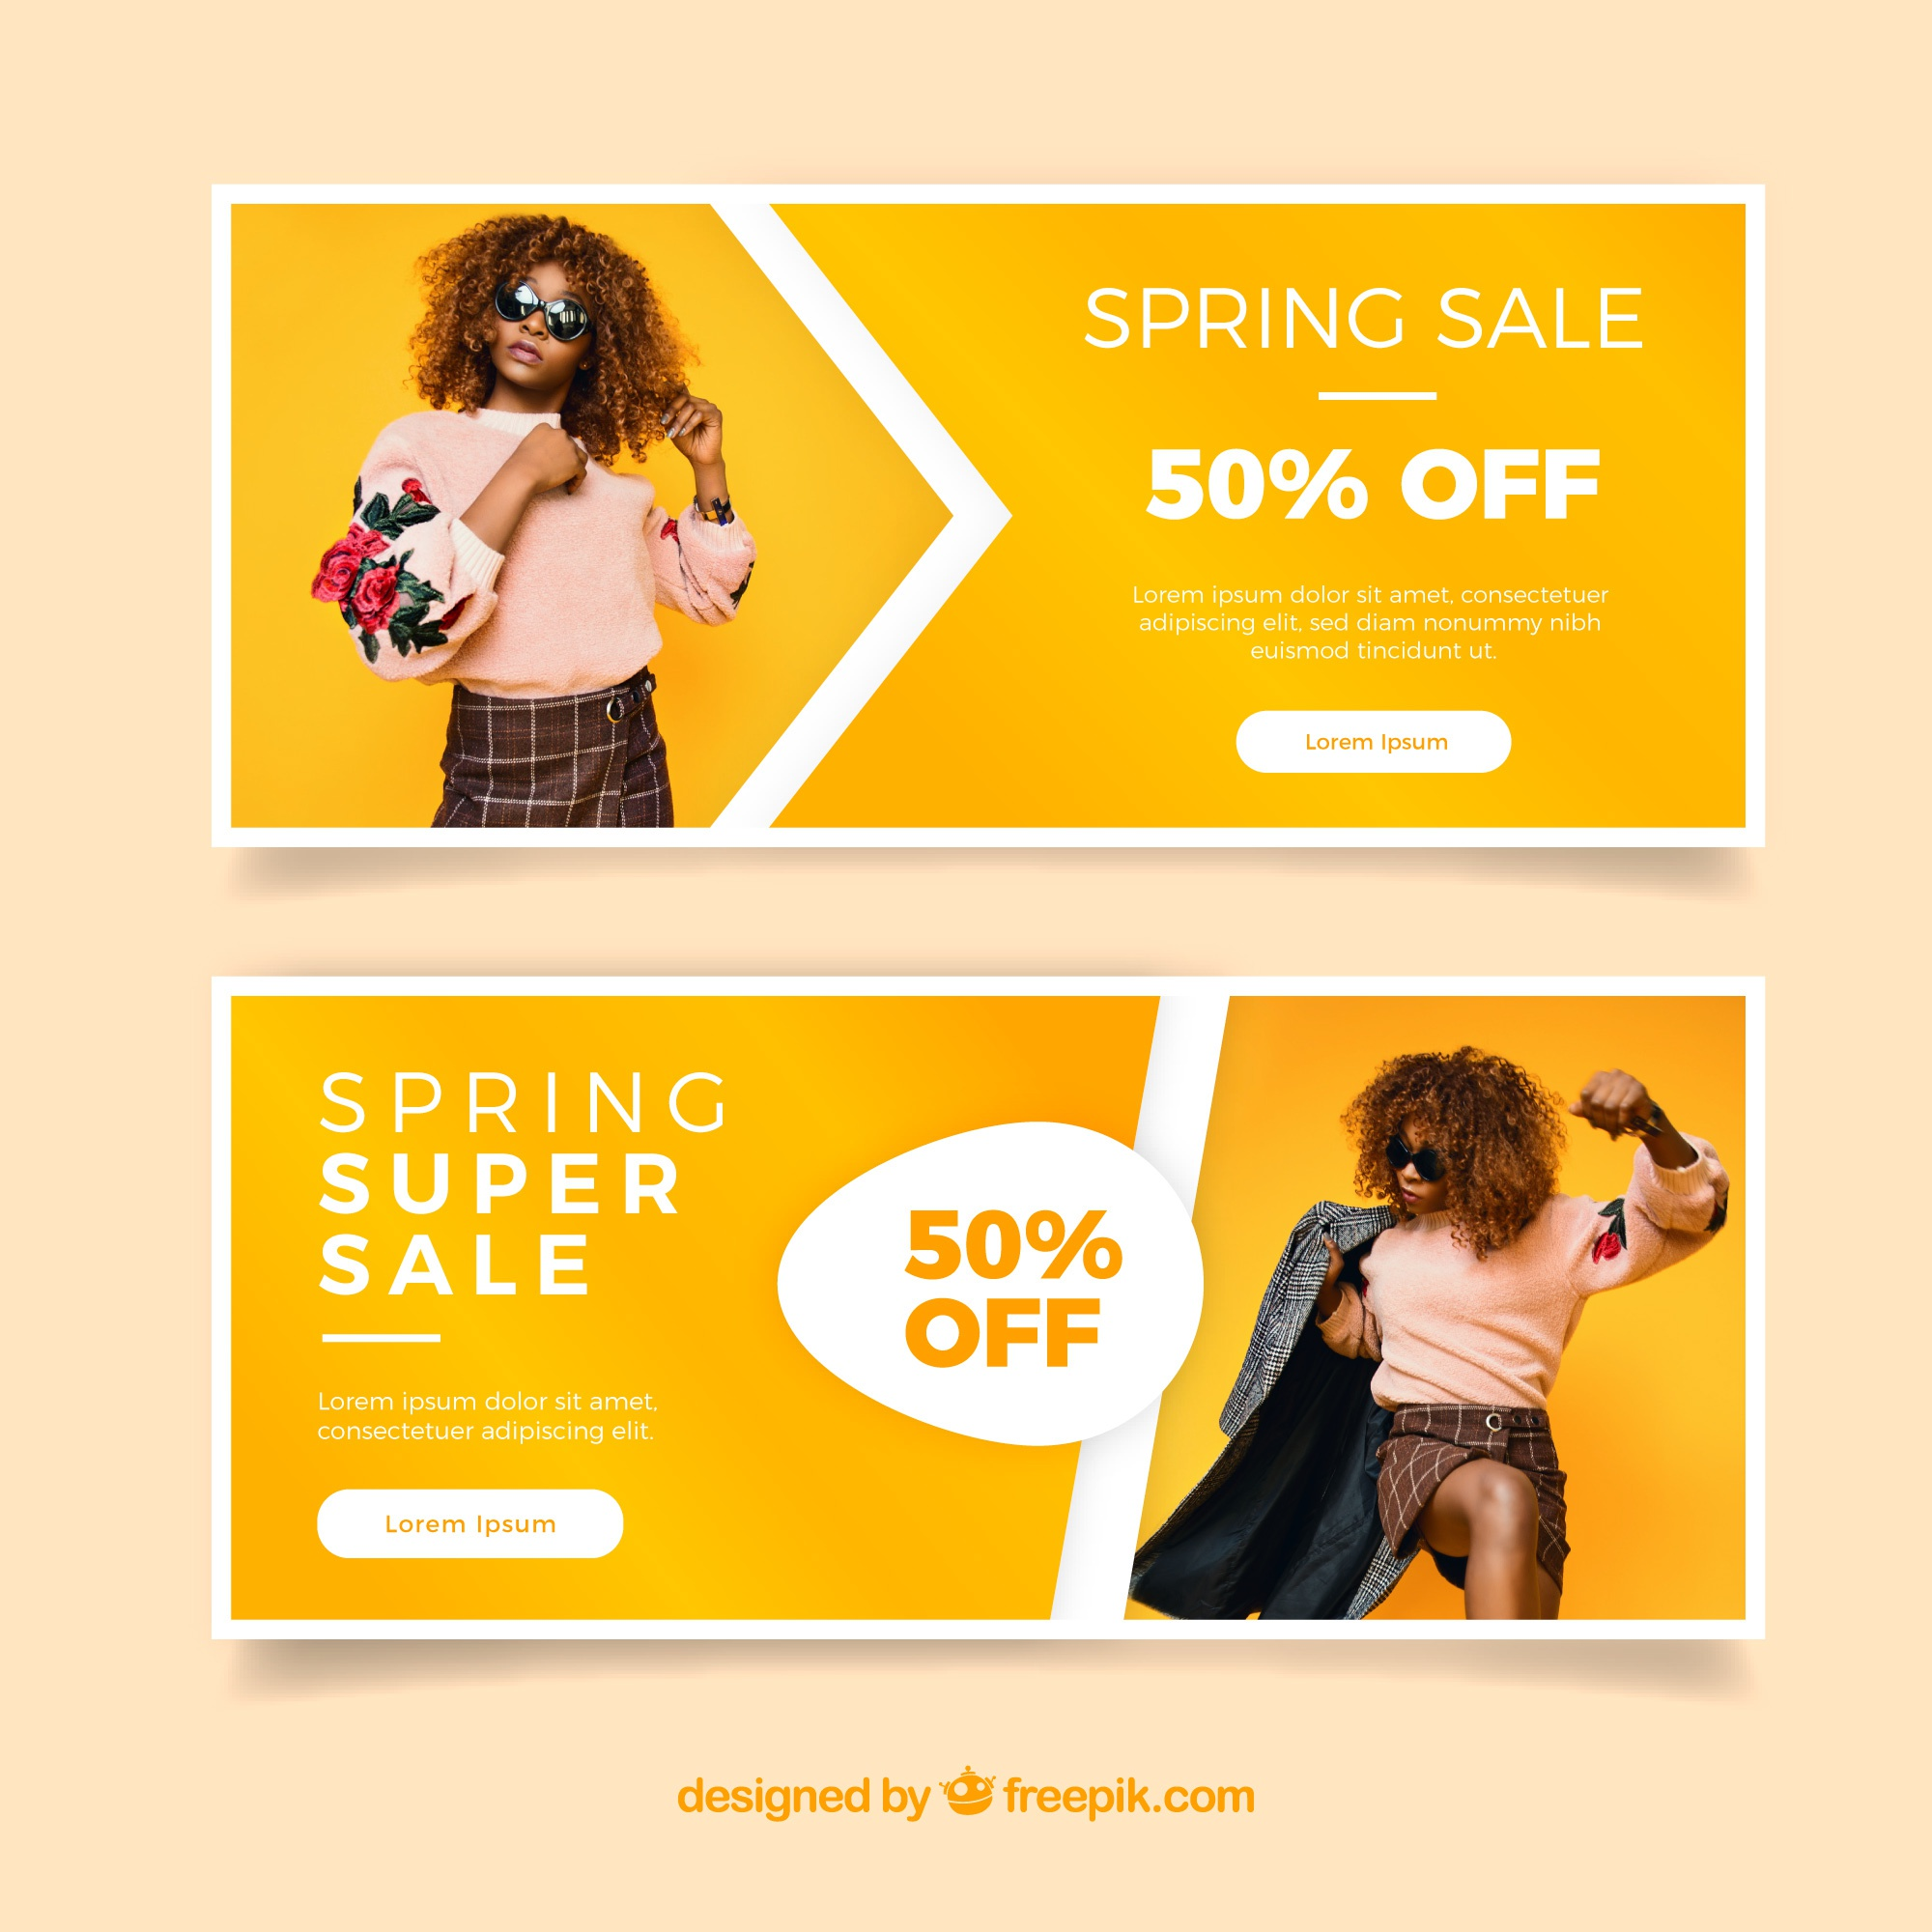 Spring sale banners with a girl's photo